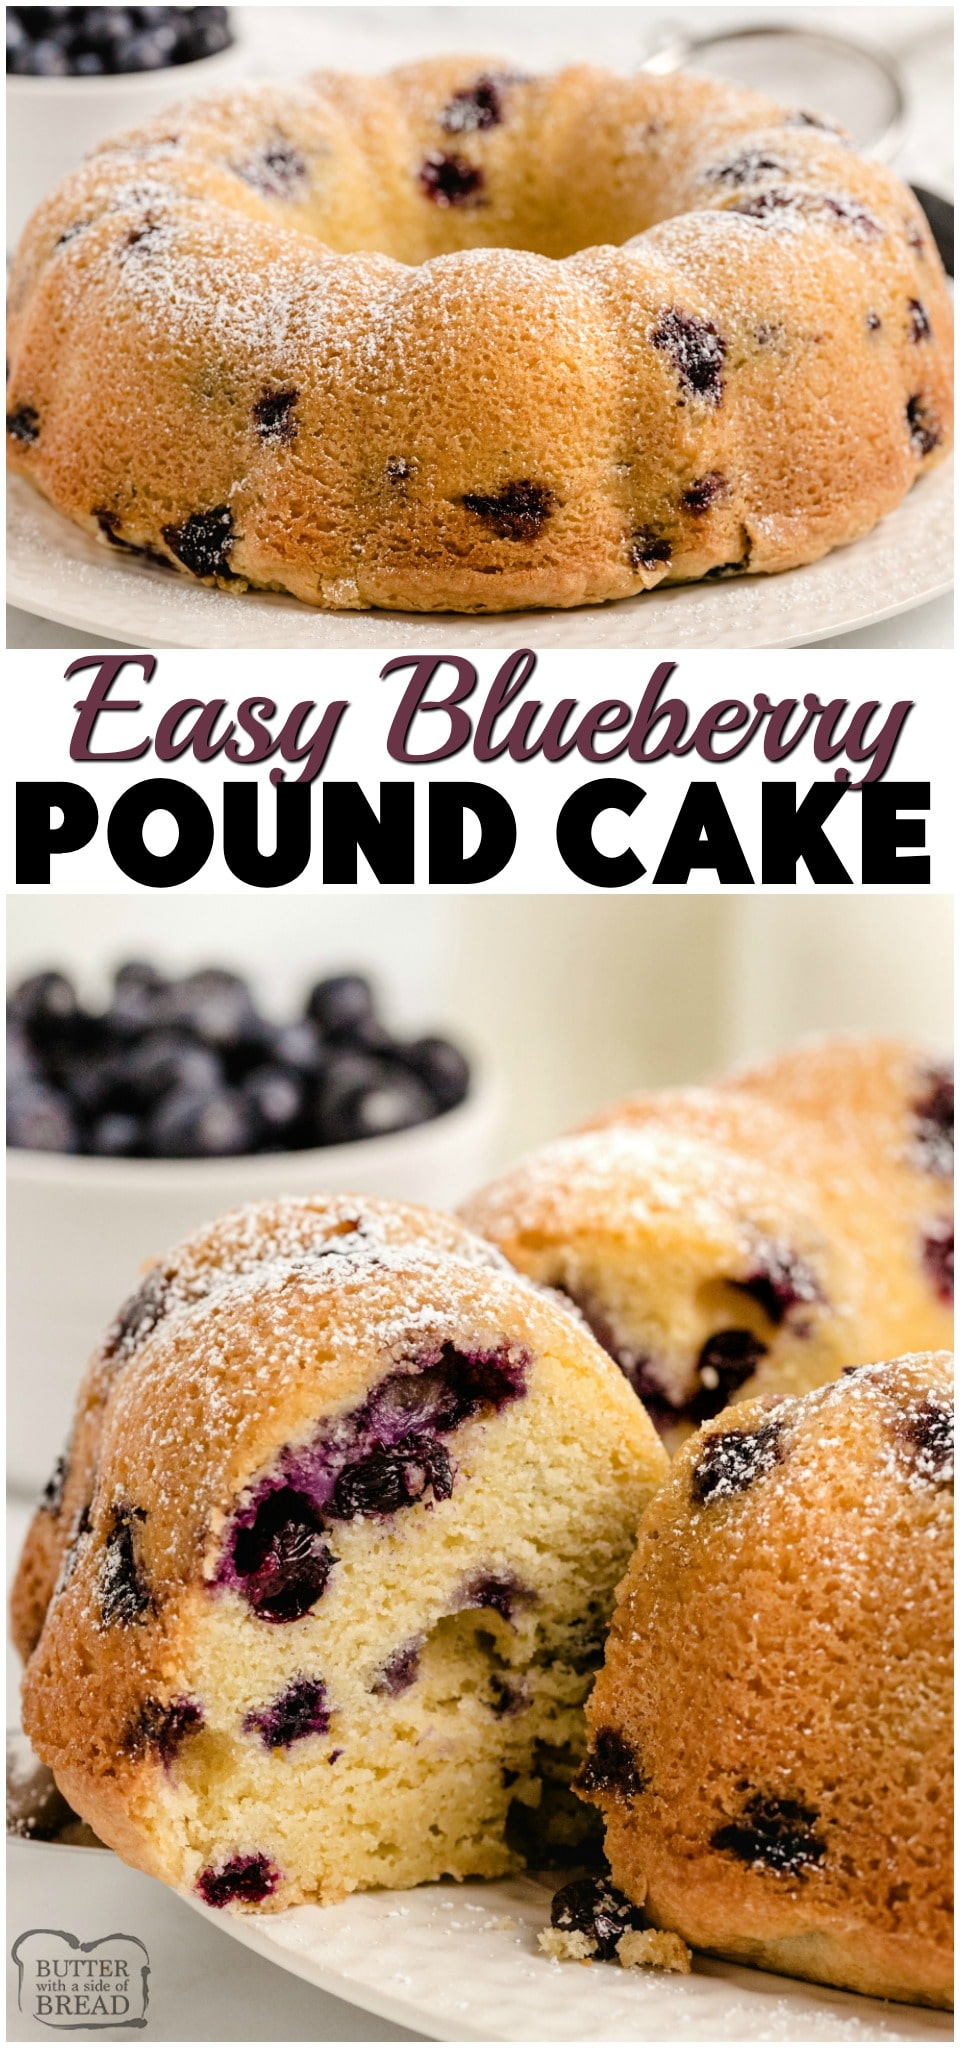 Blueberry Pound Cake make with butter, sugar and fresh blueberries. Elegant pound cake recipe that sweet & tender with bright blueberry flavor & dusted with powdered sugar.